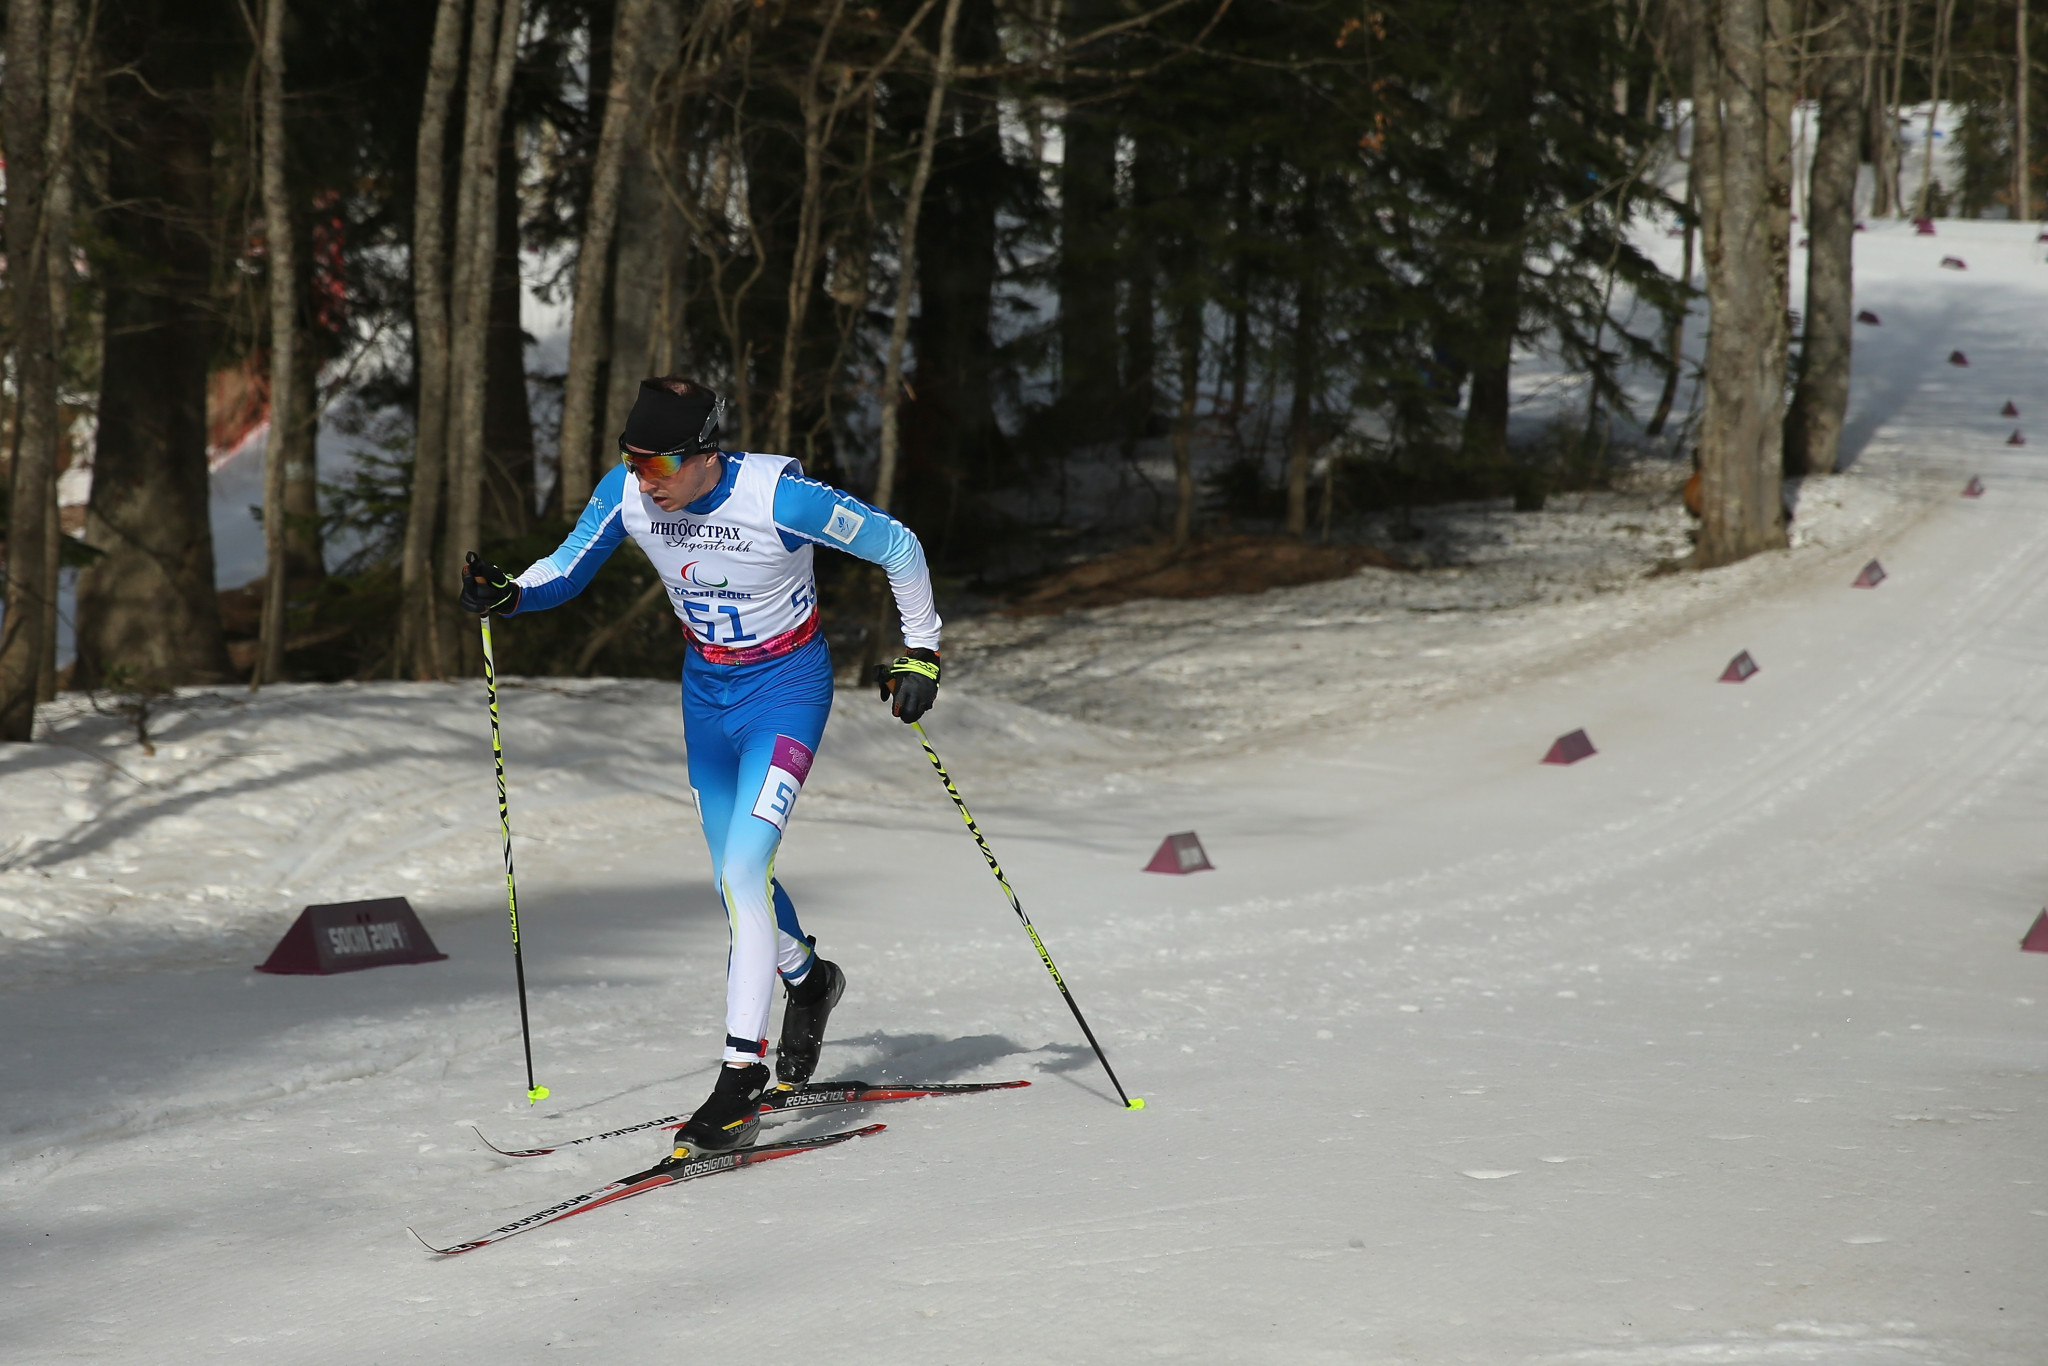 Nordic skier Rudolf Klemetti of Finland is also in contention ©Getty Images